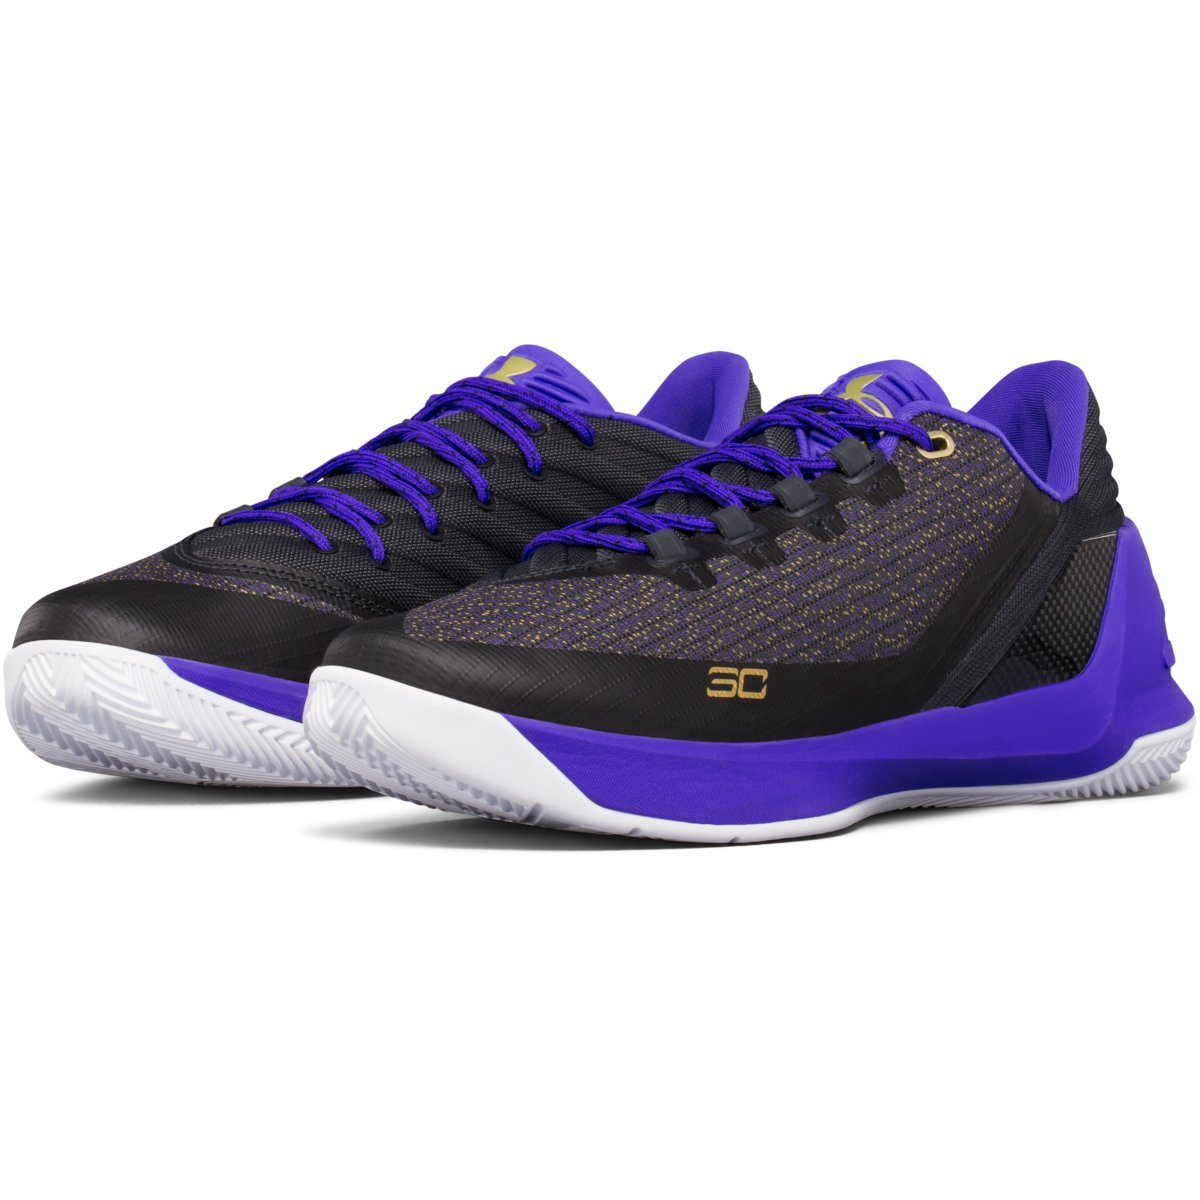 buy popular 6d60e f3b83 Under Armour 1286376-016   Men s UA Curry 3 Low Basketball Shoes  Amazon.ca   Shoes   Handbags